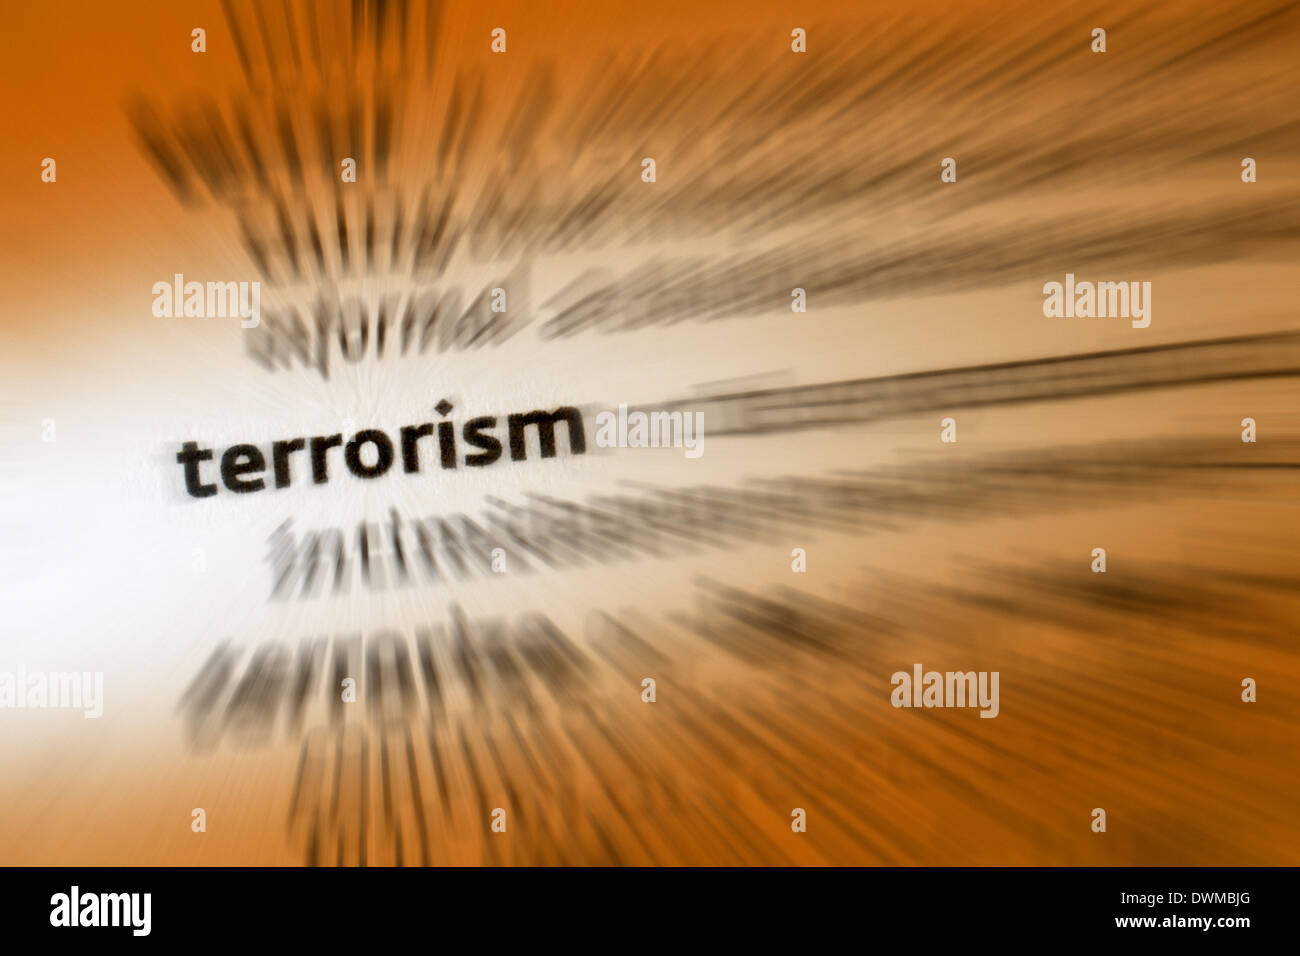 Terrorism is the use of violence and intimidation in the pursuit of political aims. - Stock Image